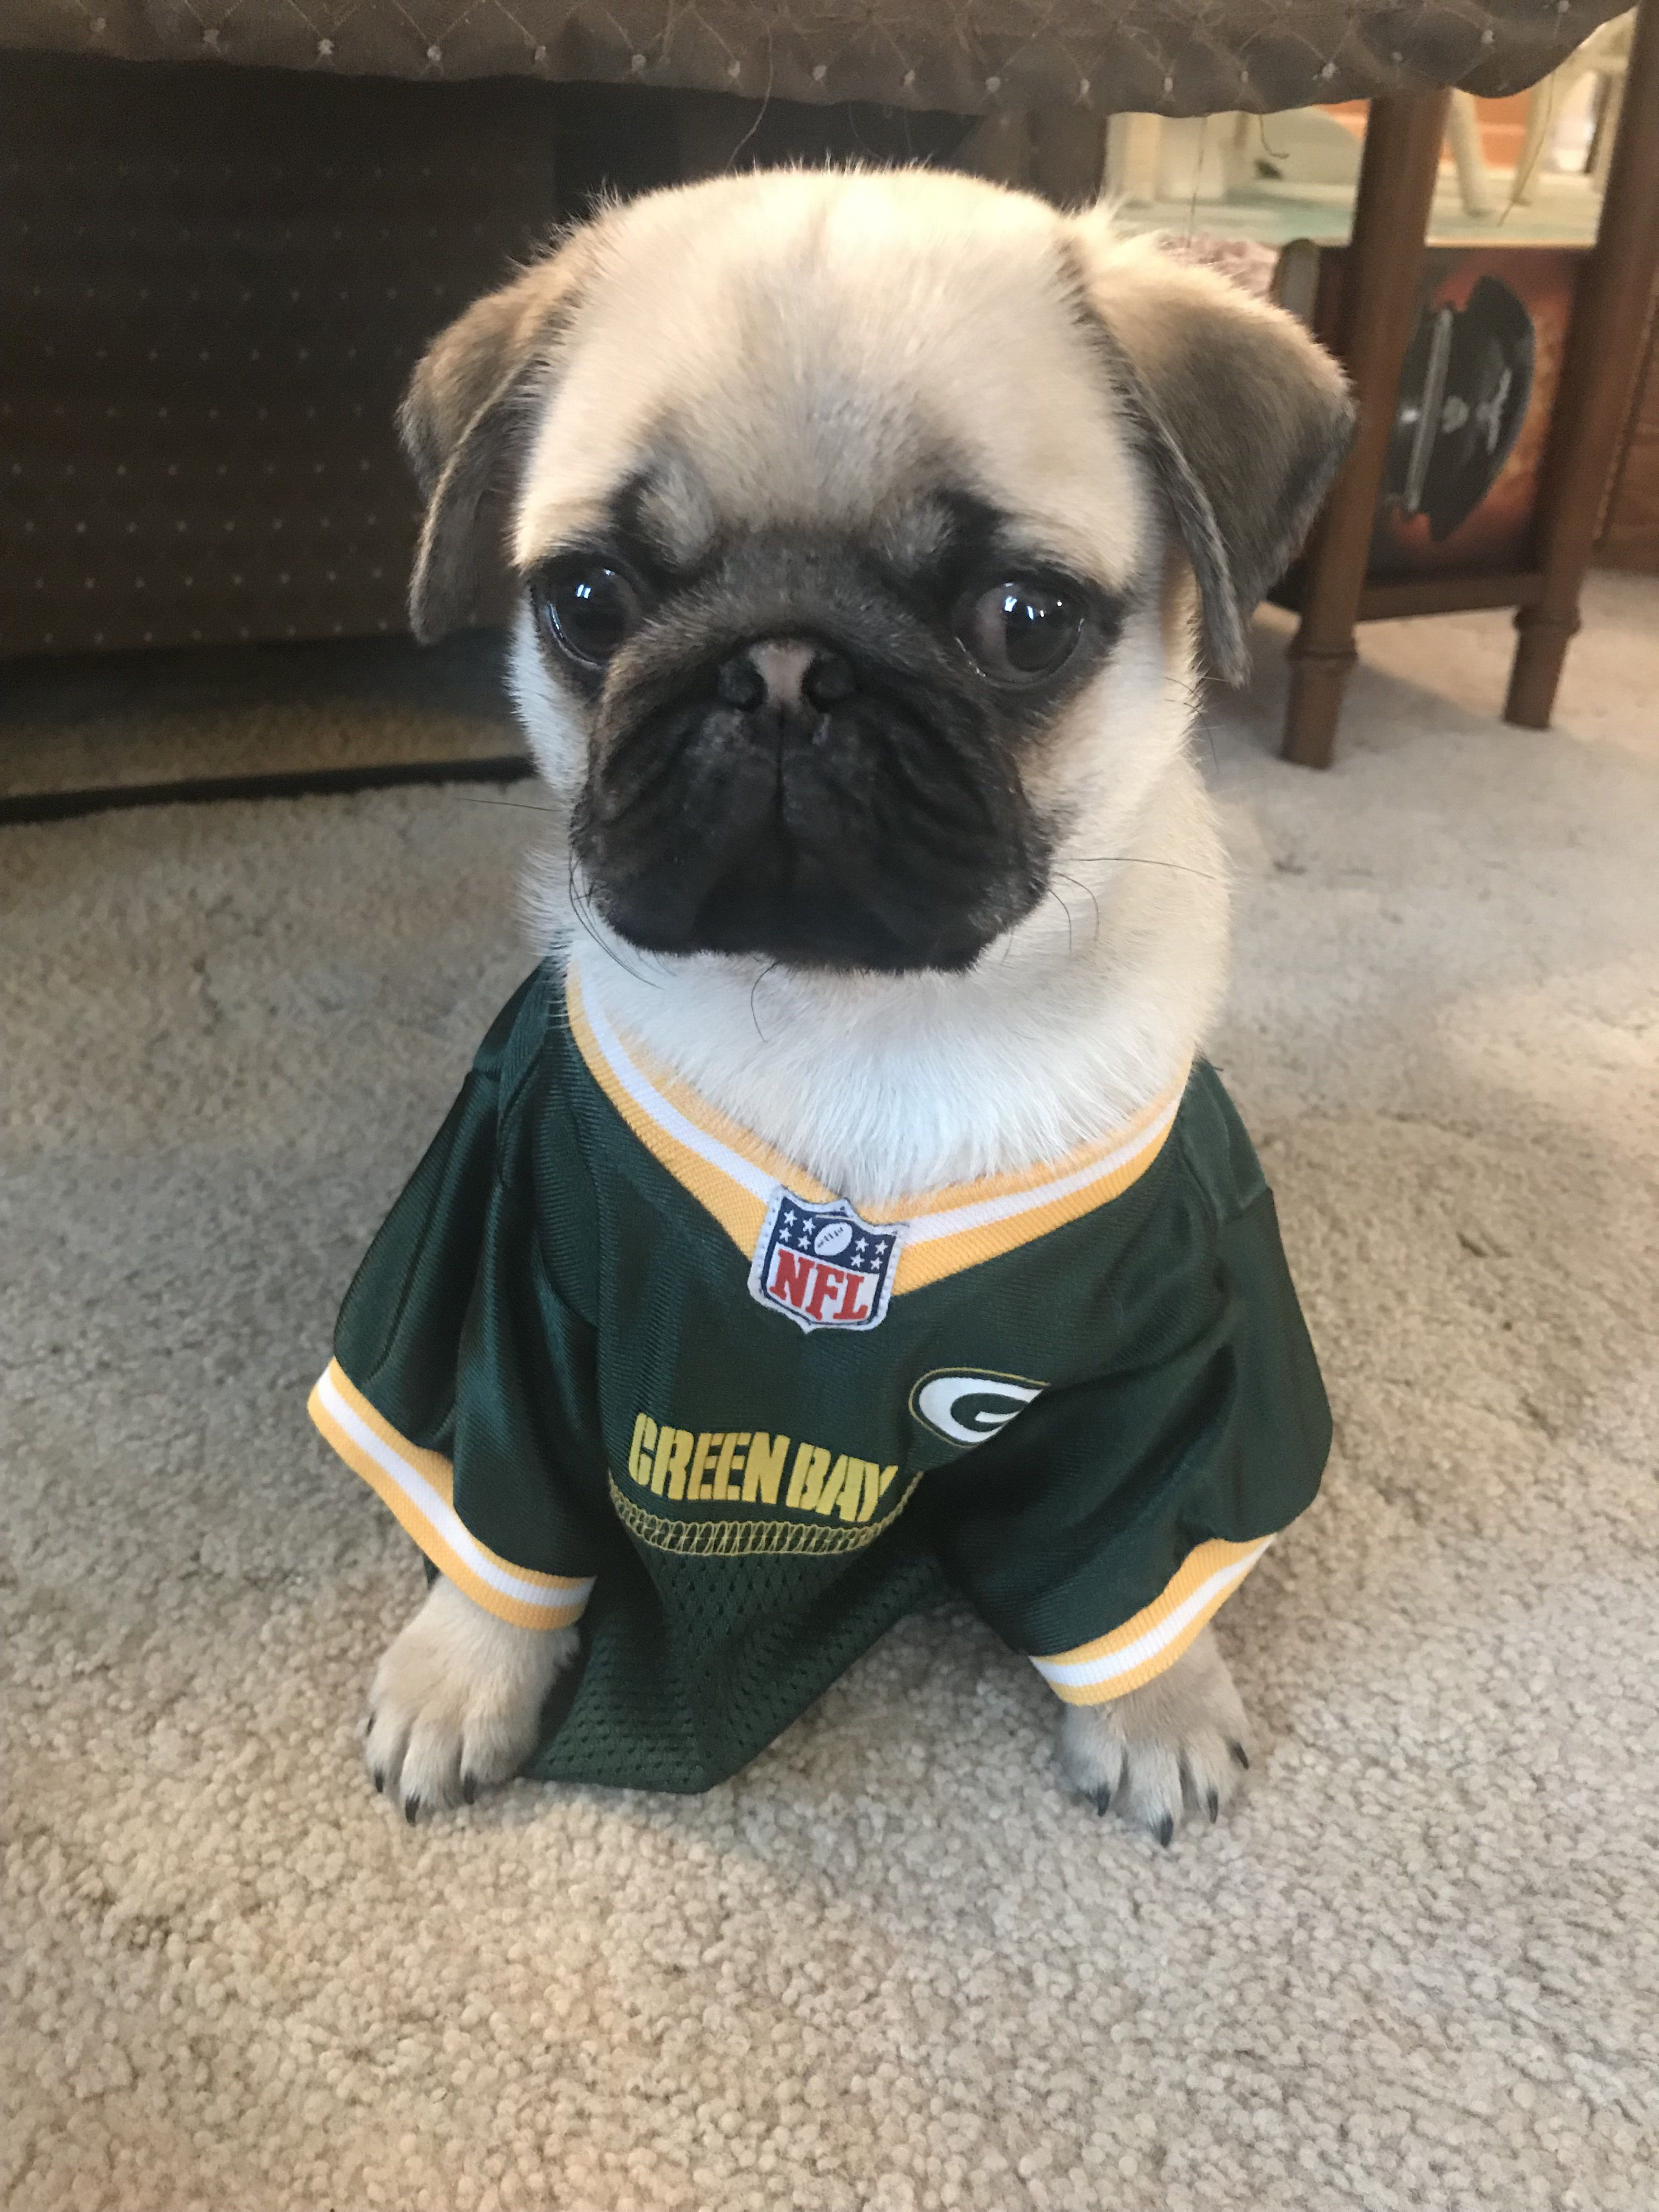 Hans Is A Die Hard Packer Fan Loves Cheese Too Green Bay